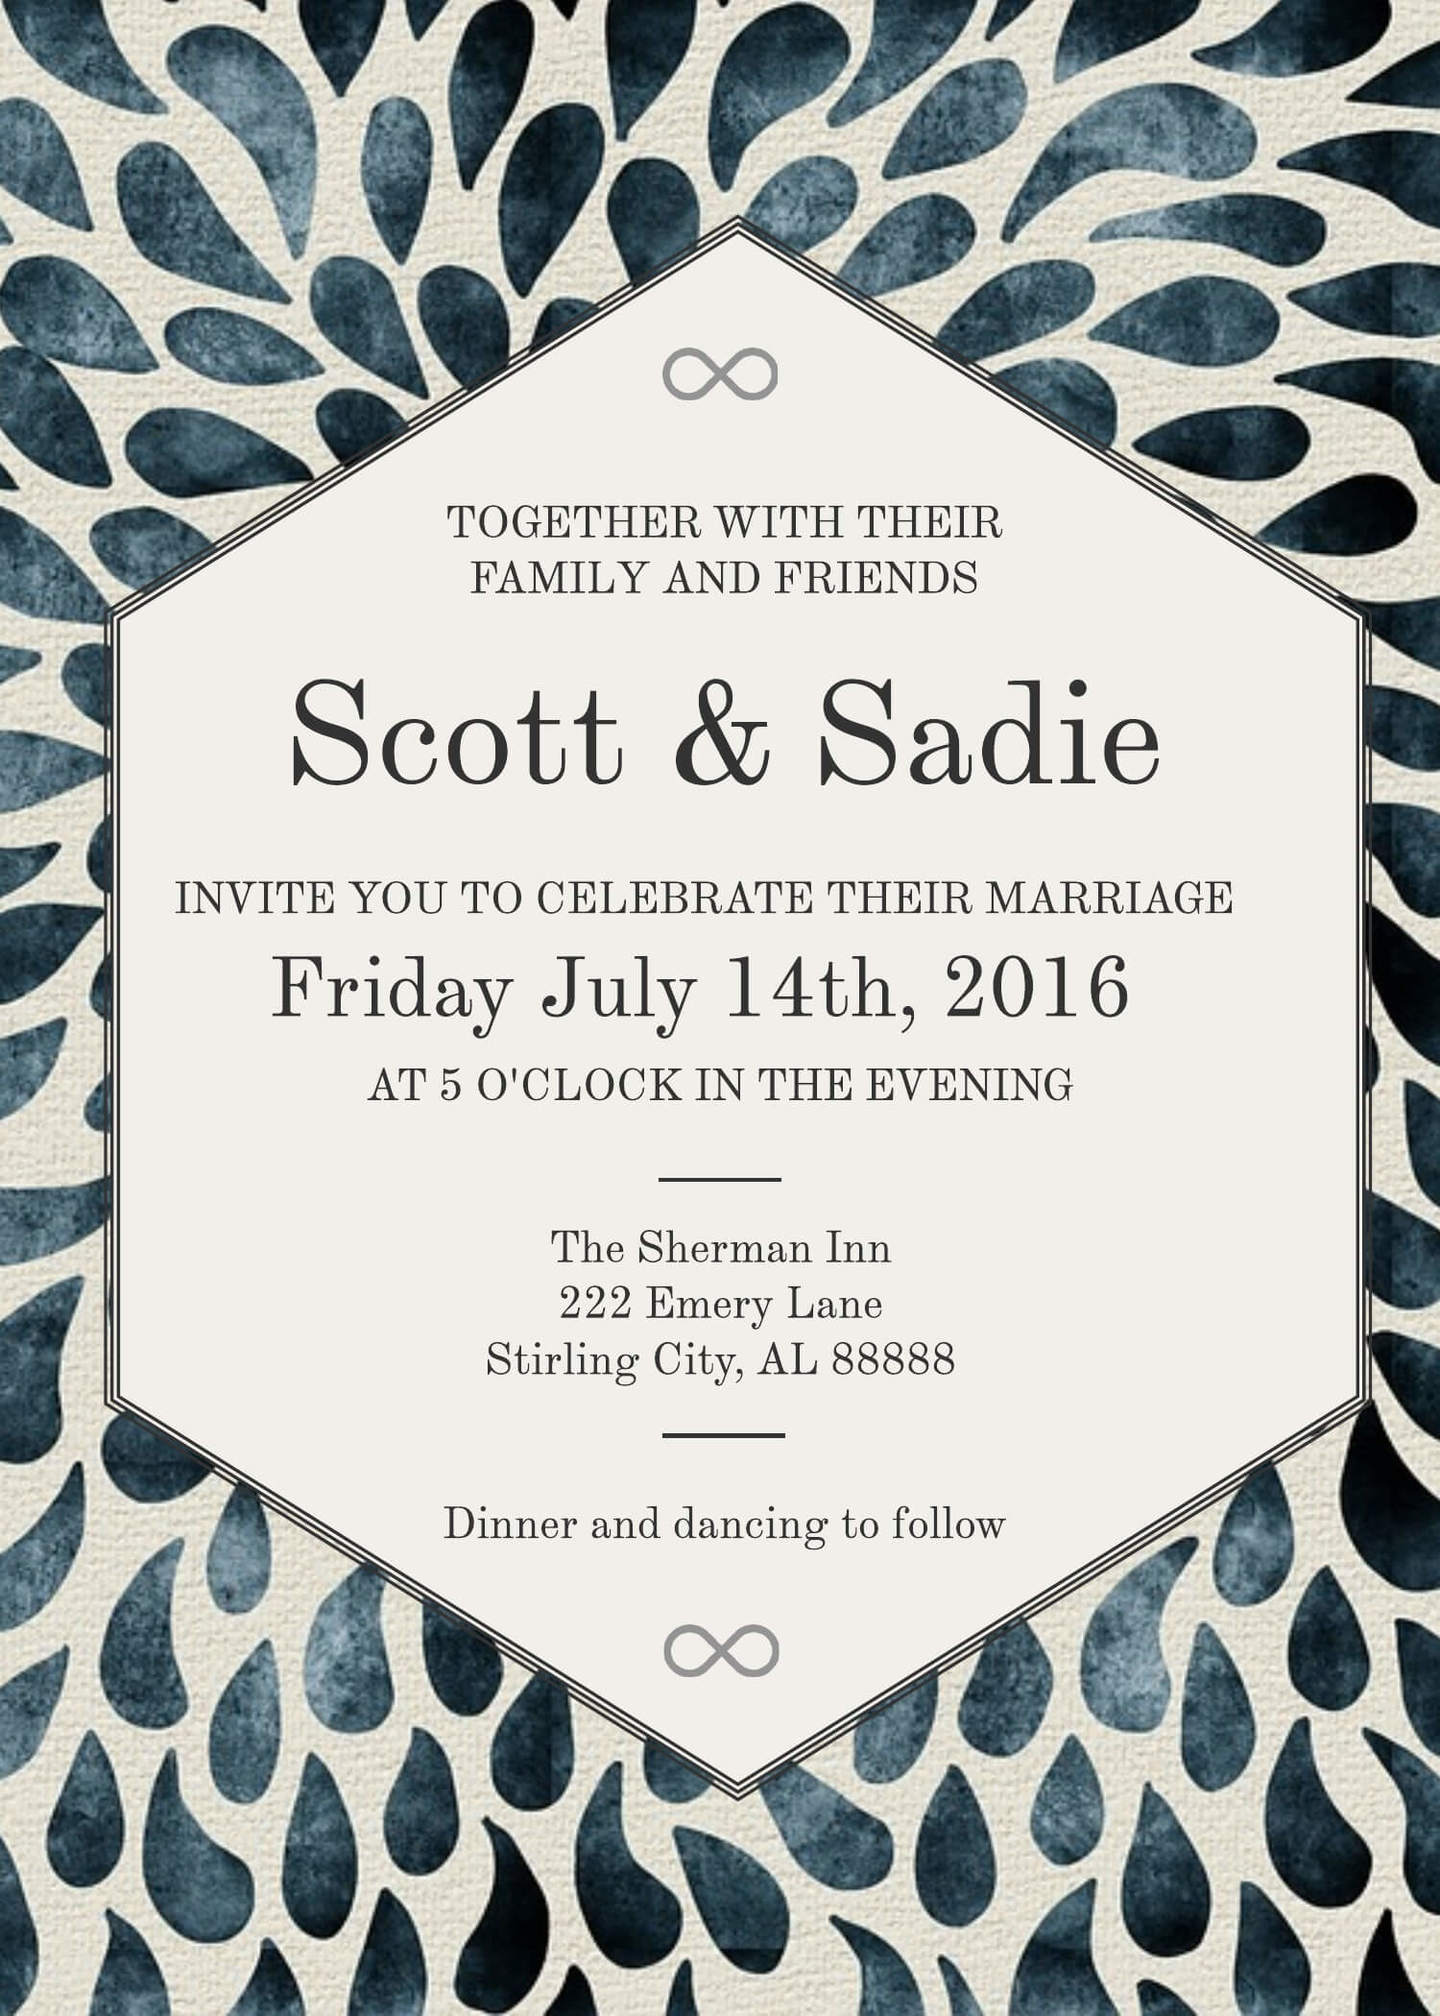 16 free invitation card templates examples lucidpress rsvp wedding invitation 5x7 stopboris Image collections